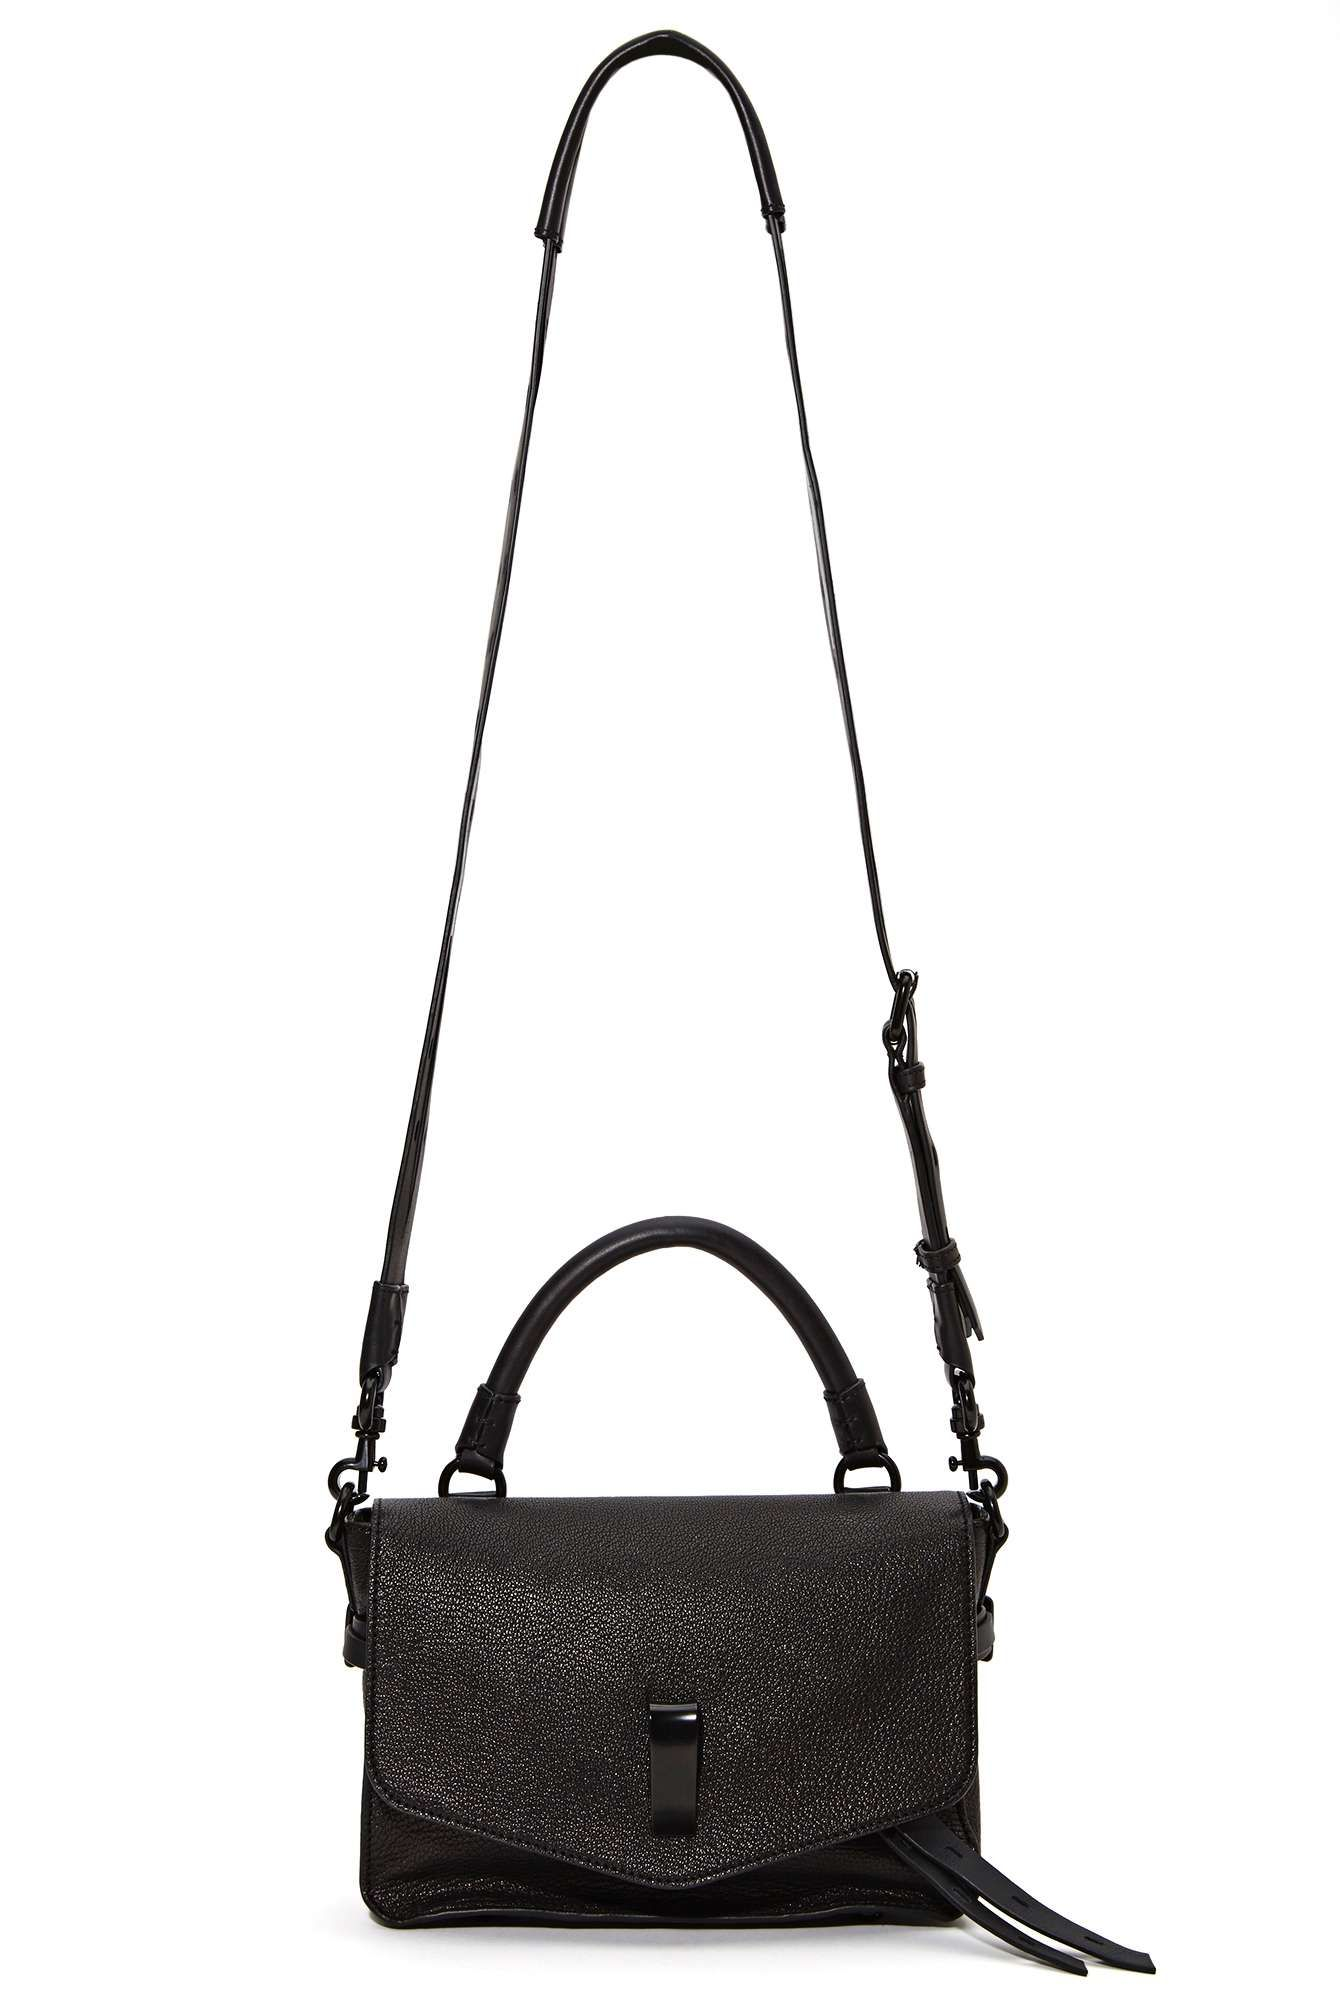 Joy Gryson Ellie Leather Bag at Nasty Gal